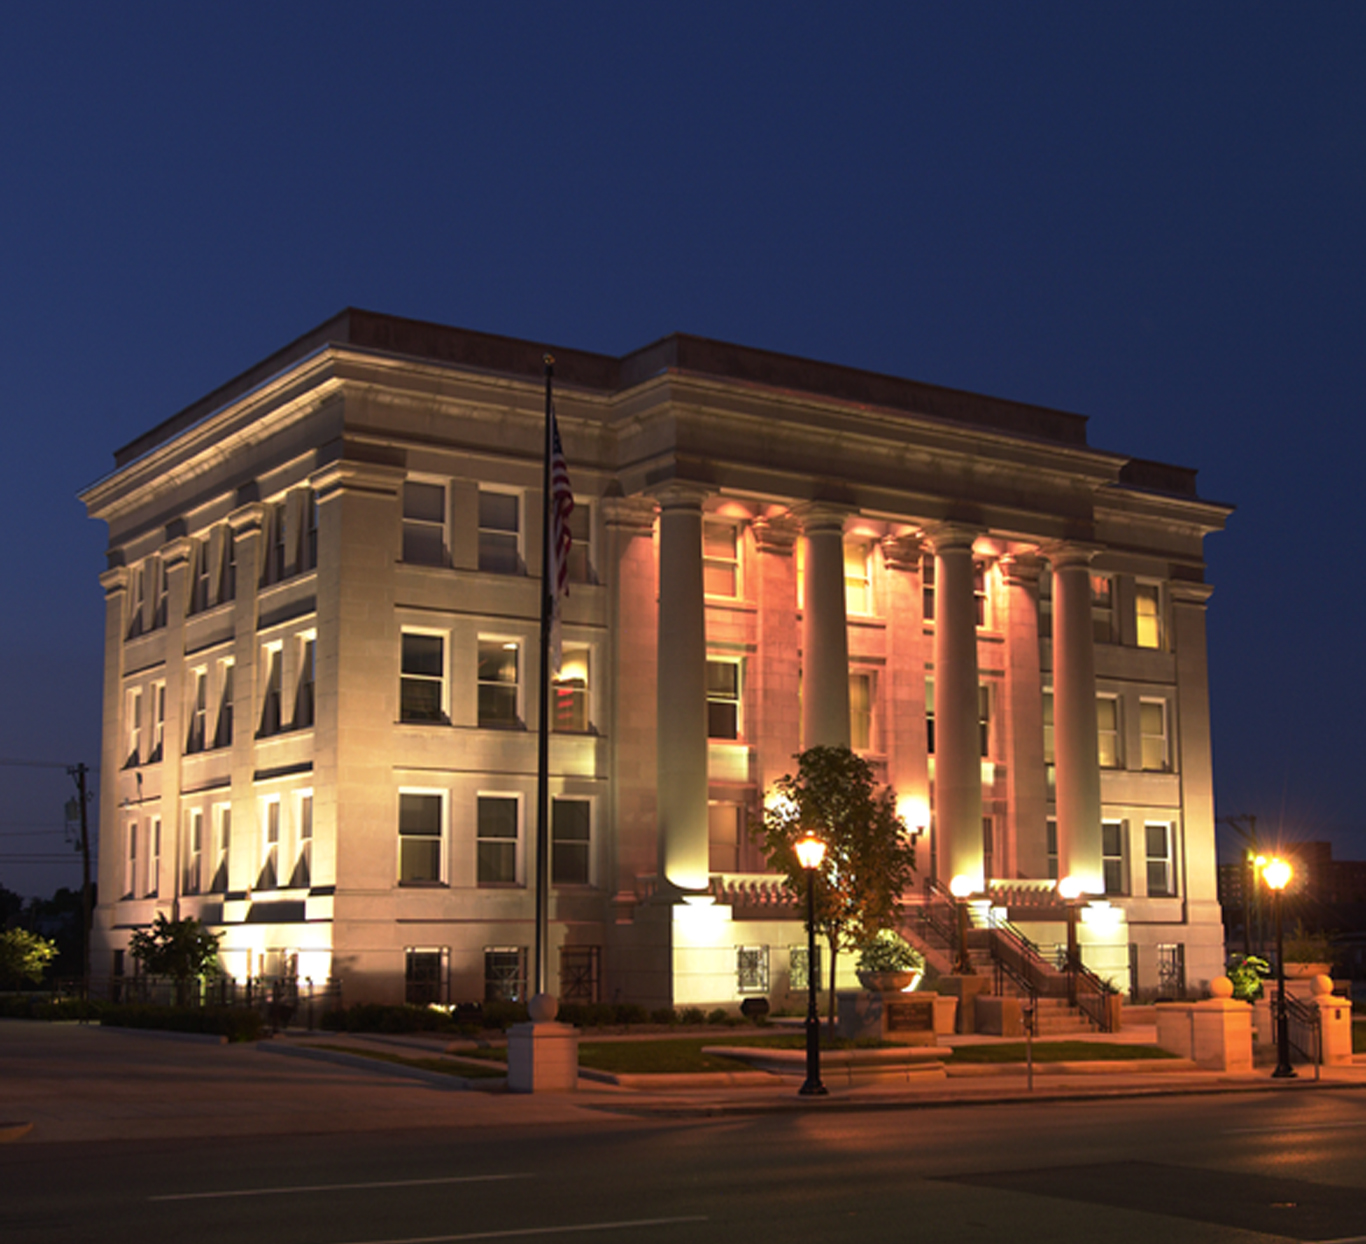 Evan Lloyd Architects provided government architectural services for the Renovation of the Waterways Building of the4th Distriction Appellate Court in Springfield, Illinois.